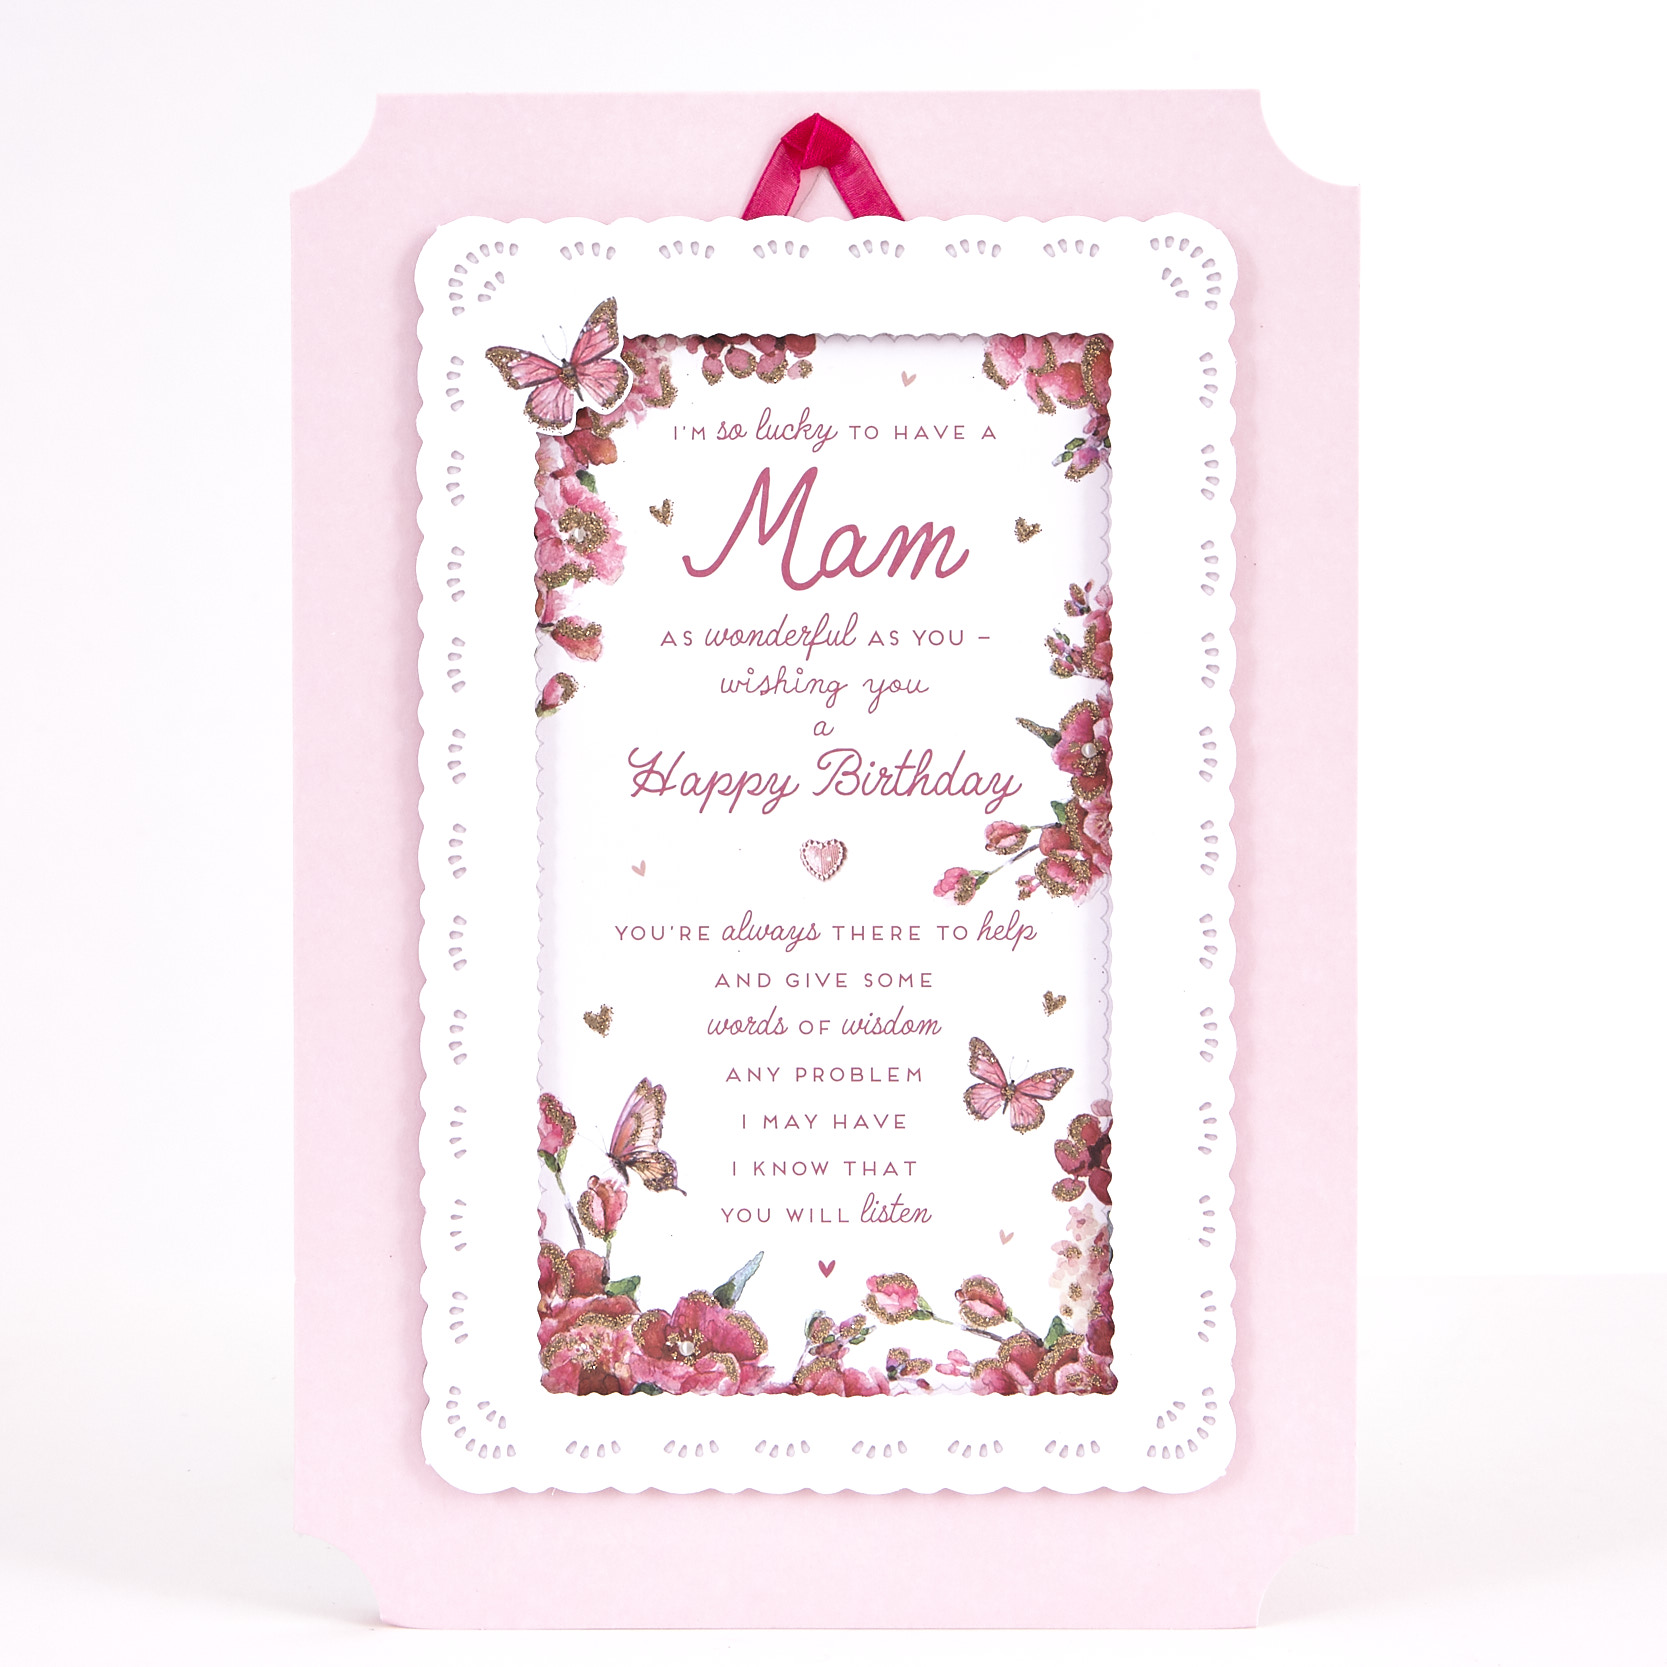 Signature Collection Birthday Card - Mam Roses